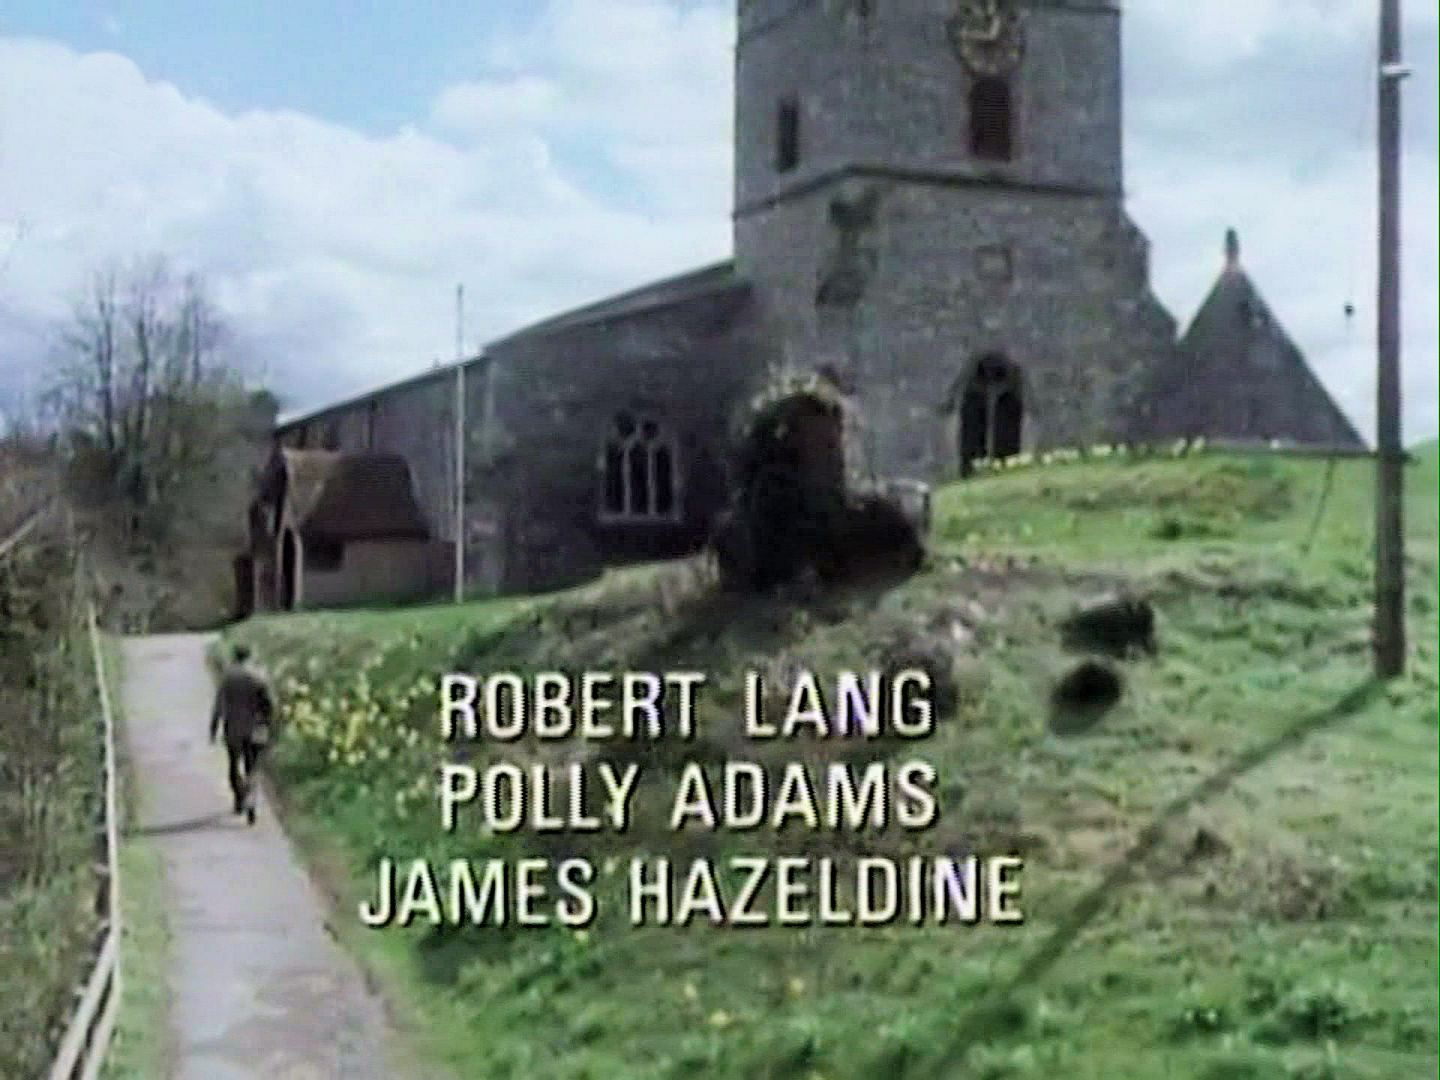 Main title from the 1986 'The Murder at the Vicarage' episode of Agatha Christie's Miss Marple (1984-1992) (6). Robert Lang, Polly Adams, James Hazeldine